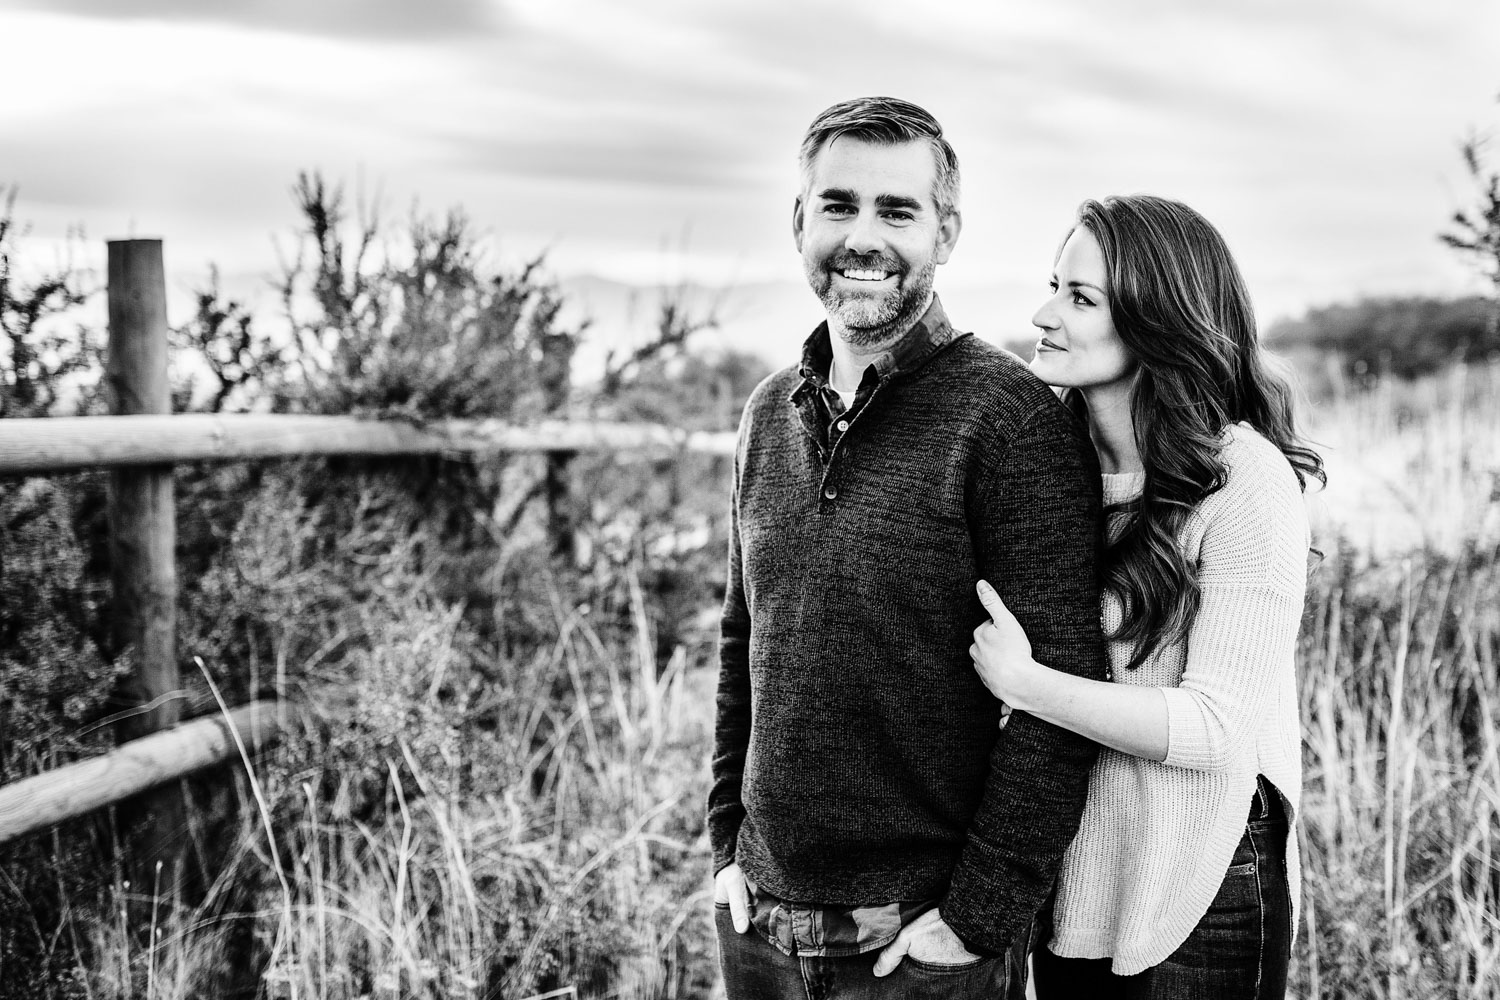 A couple gets their picture taken during their family photo session with Amy Wright Photography, based out of Rocklin, California.